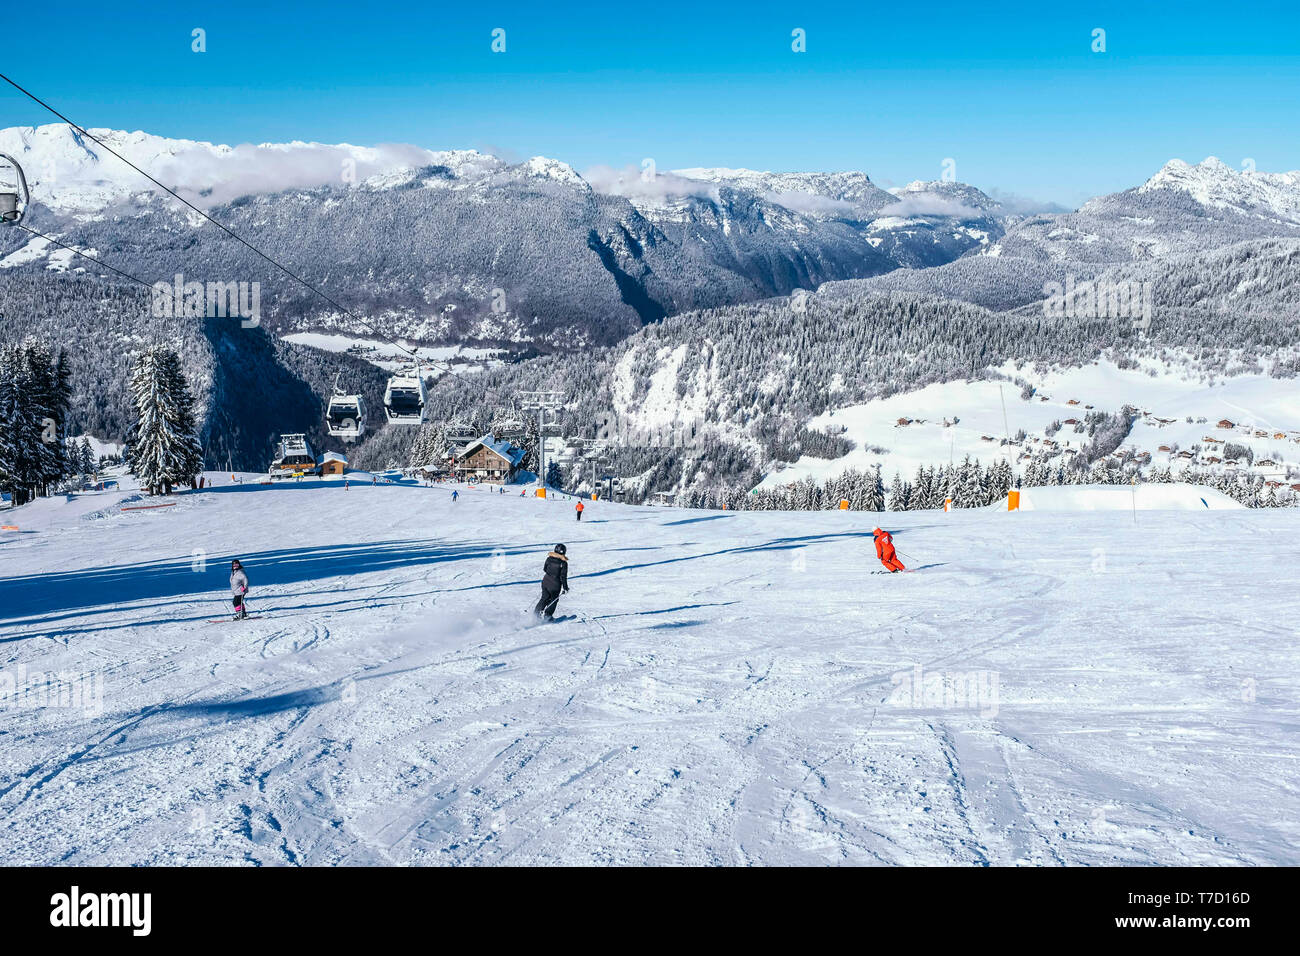 La Clusaz (eastern France): the village covered in snow viewed from the upper ski runs of the ski resort - Stock Image